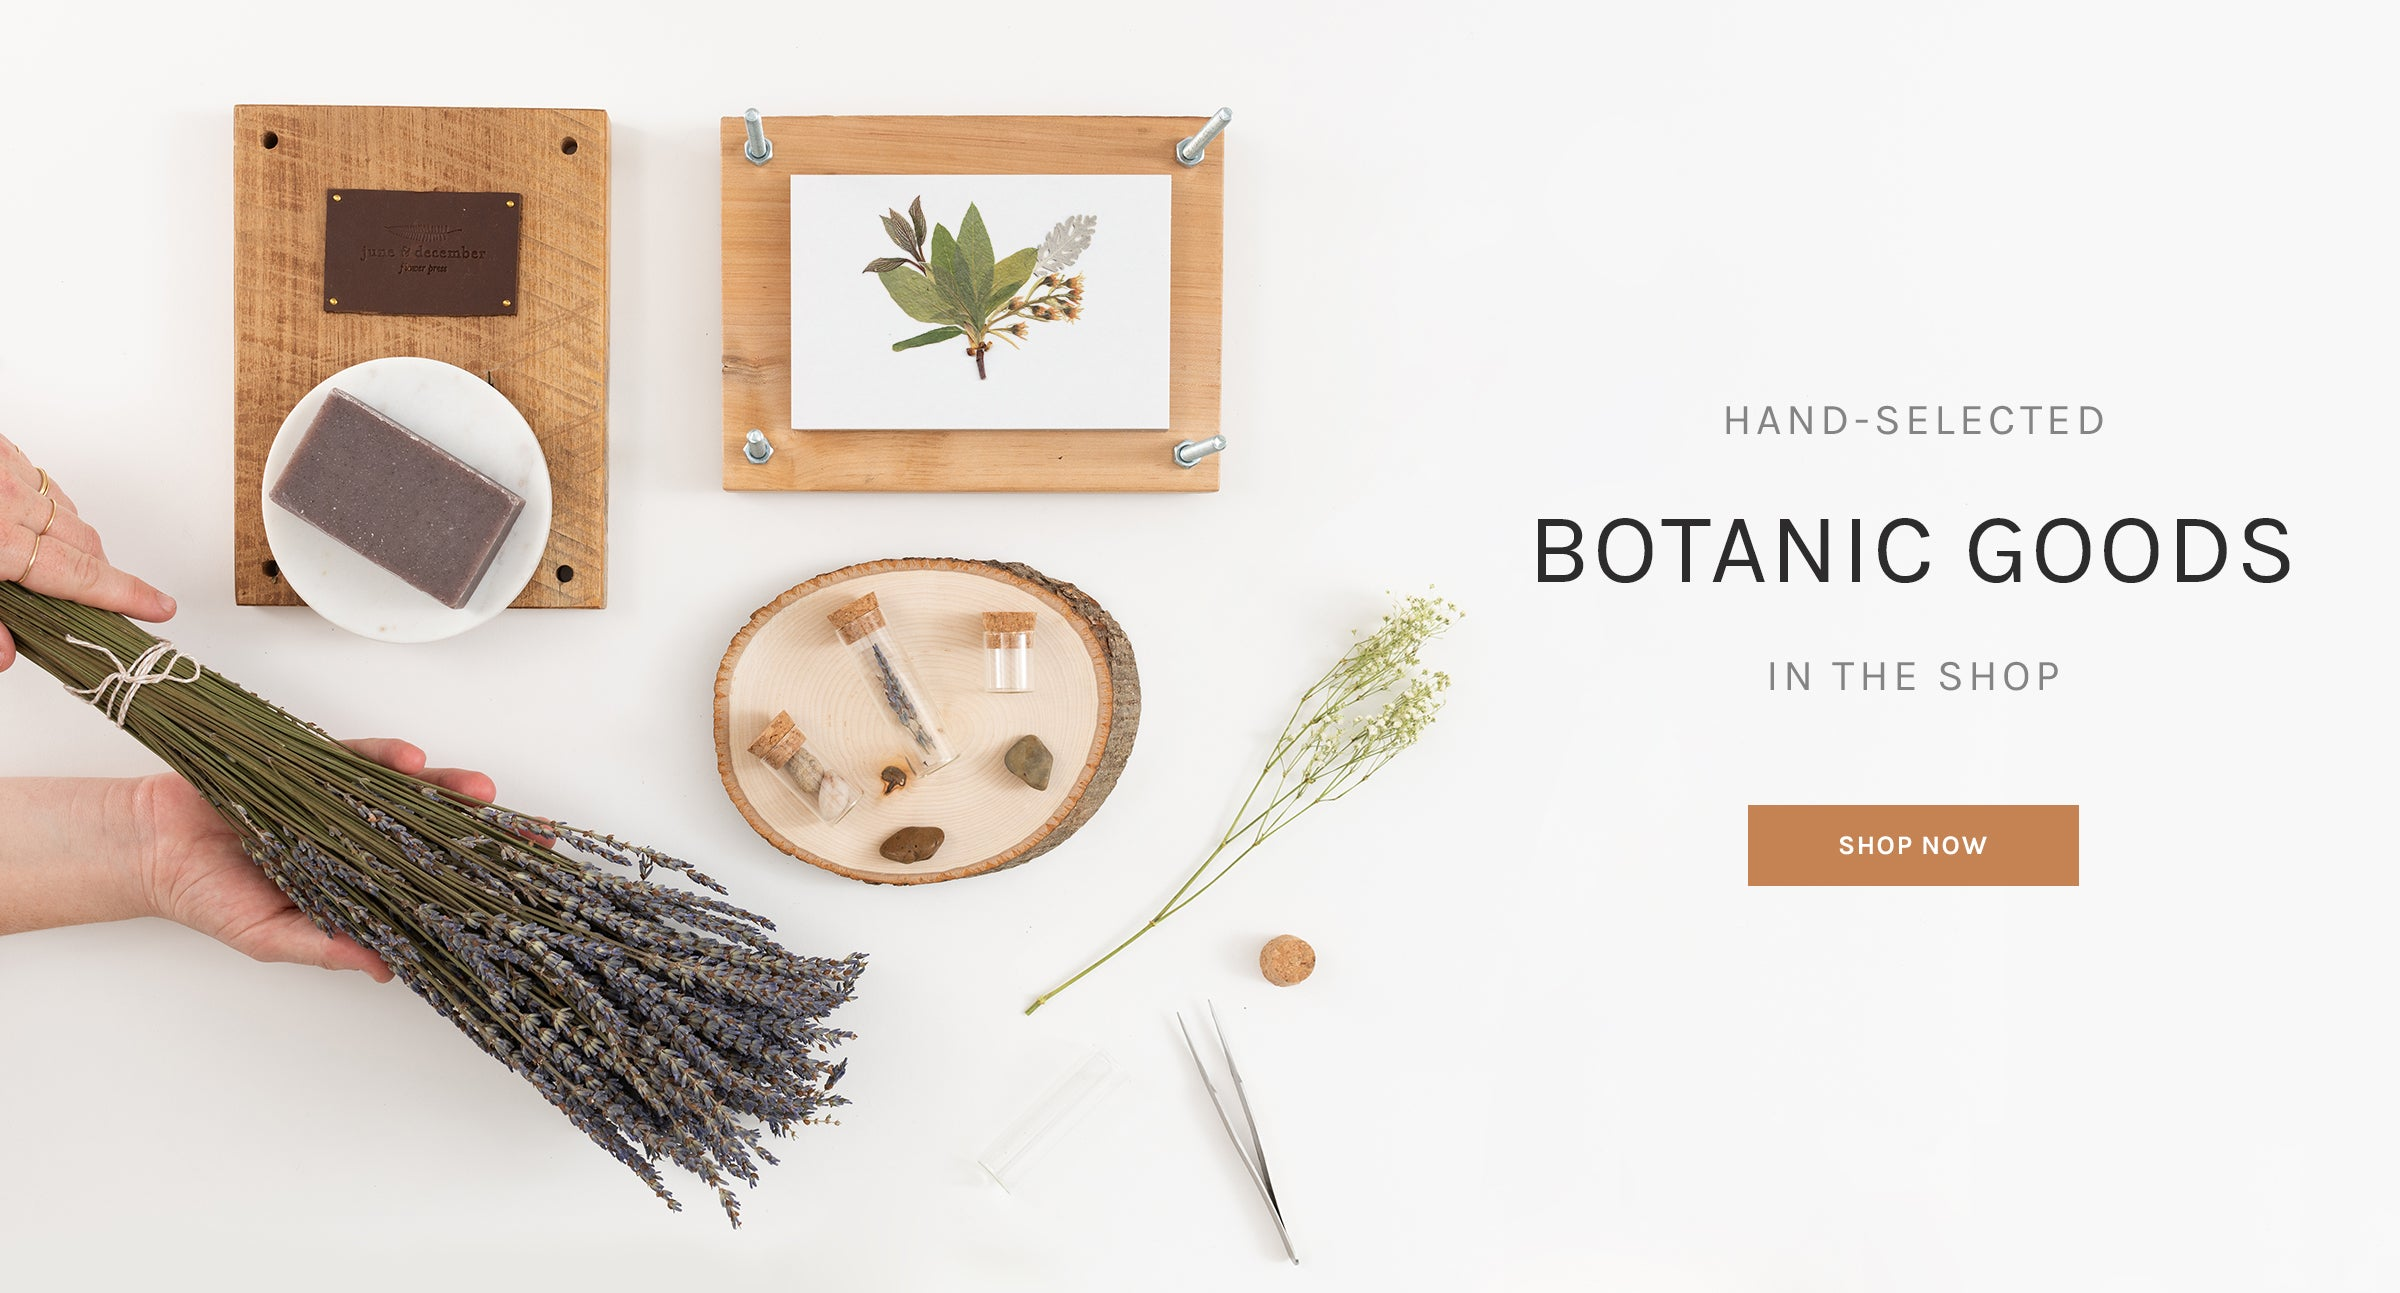 Hand-Selected Botanic Goods in the Shop